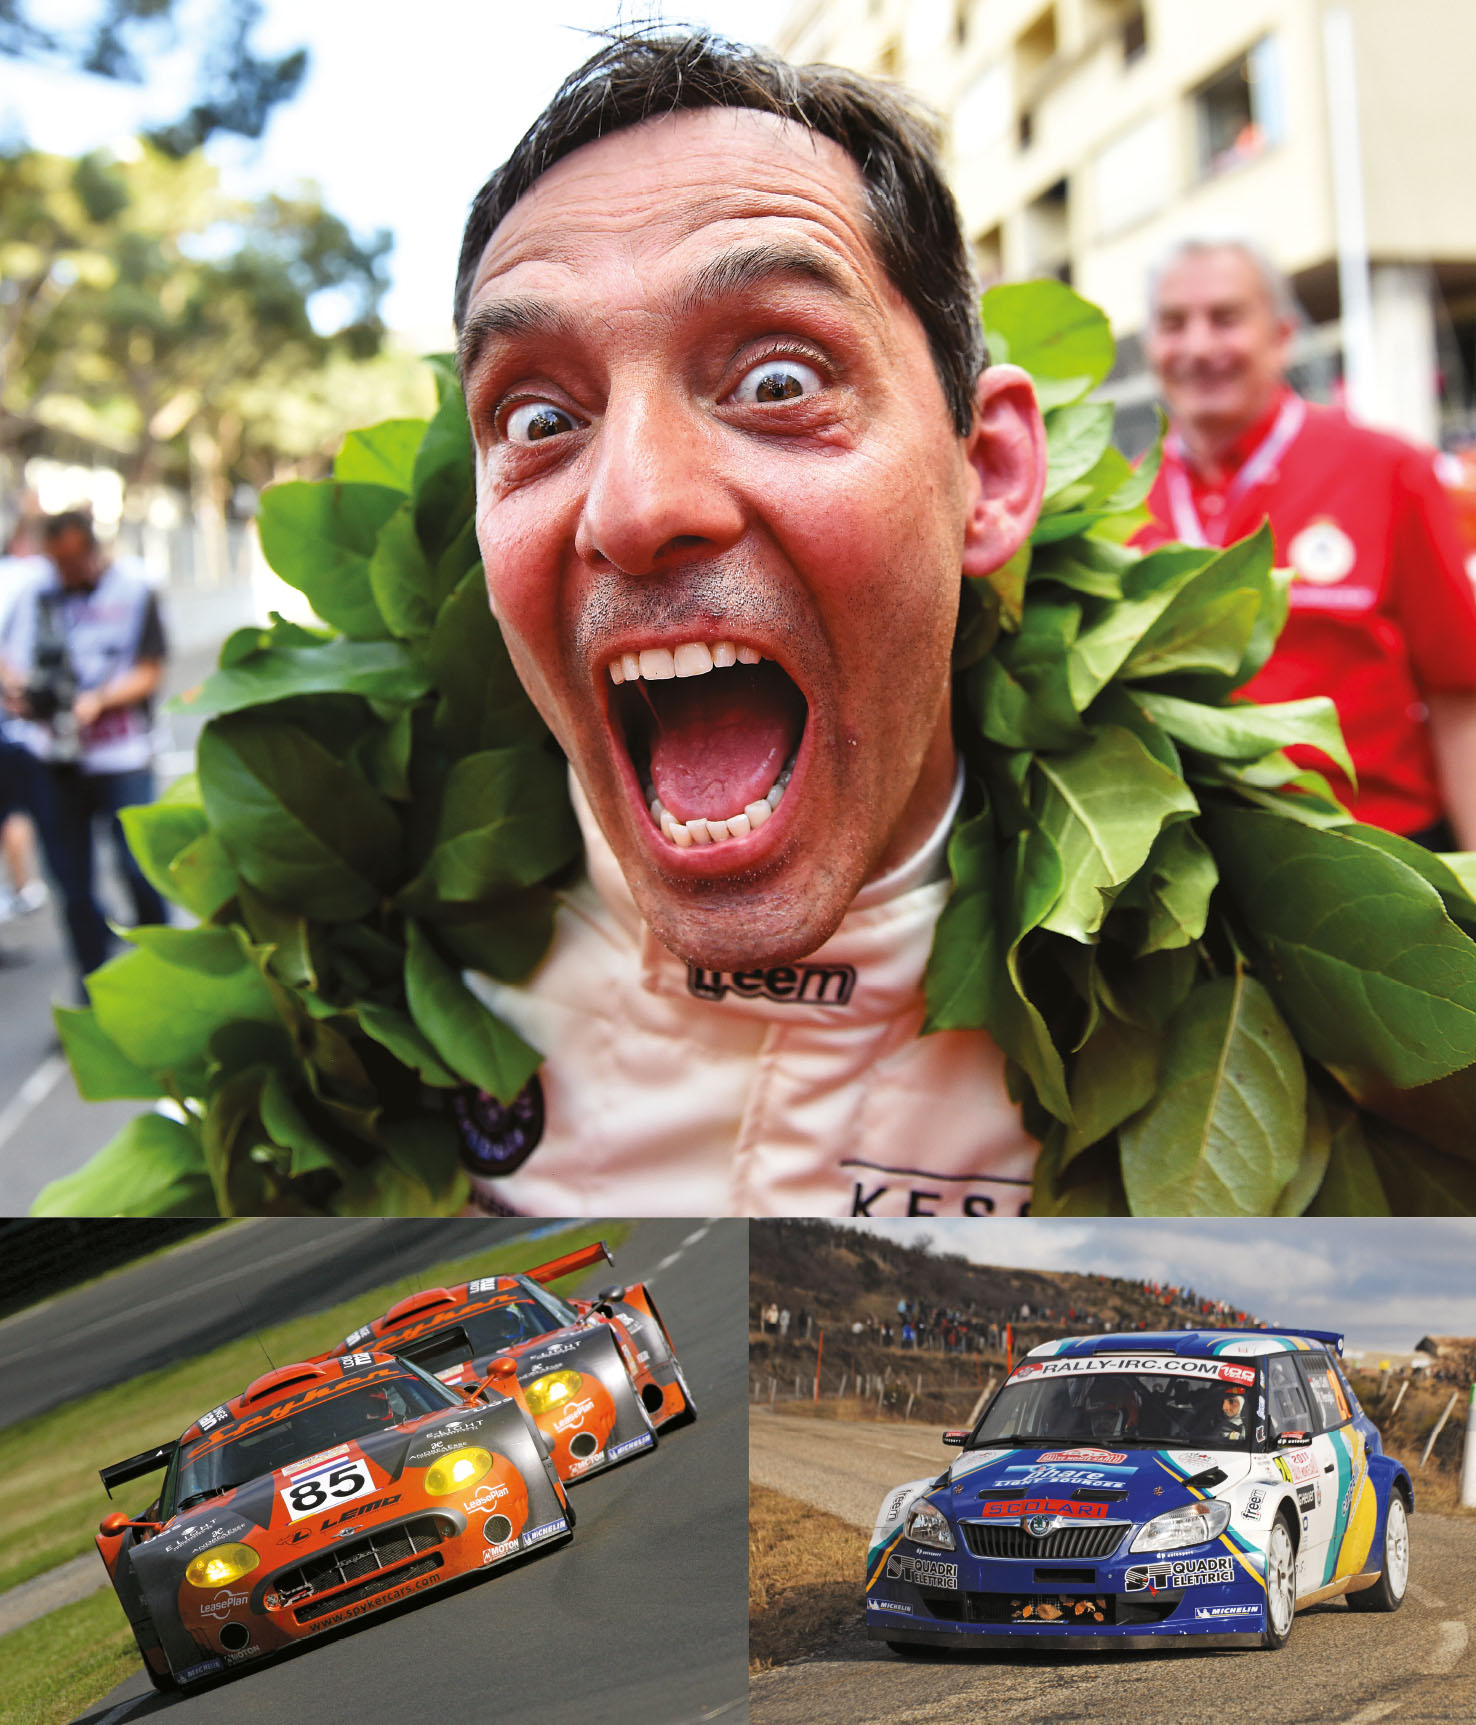 Caffi was a winner in the 2016 Monaco Historique. Le Mans with Spyker in 2007 and Intercontinental Rally Challenge with Škoda